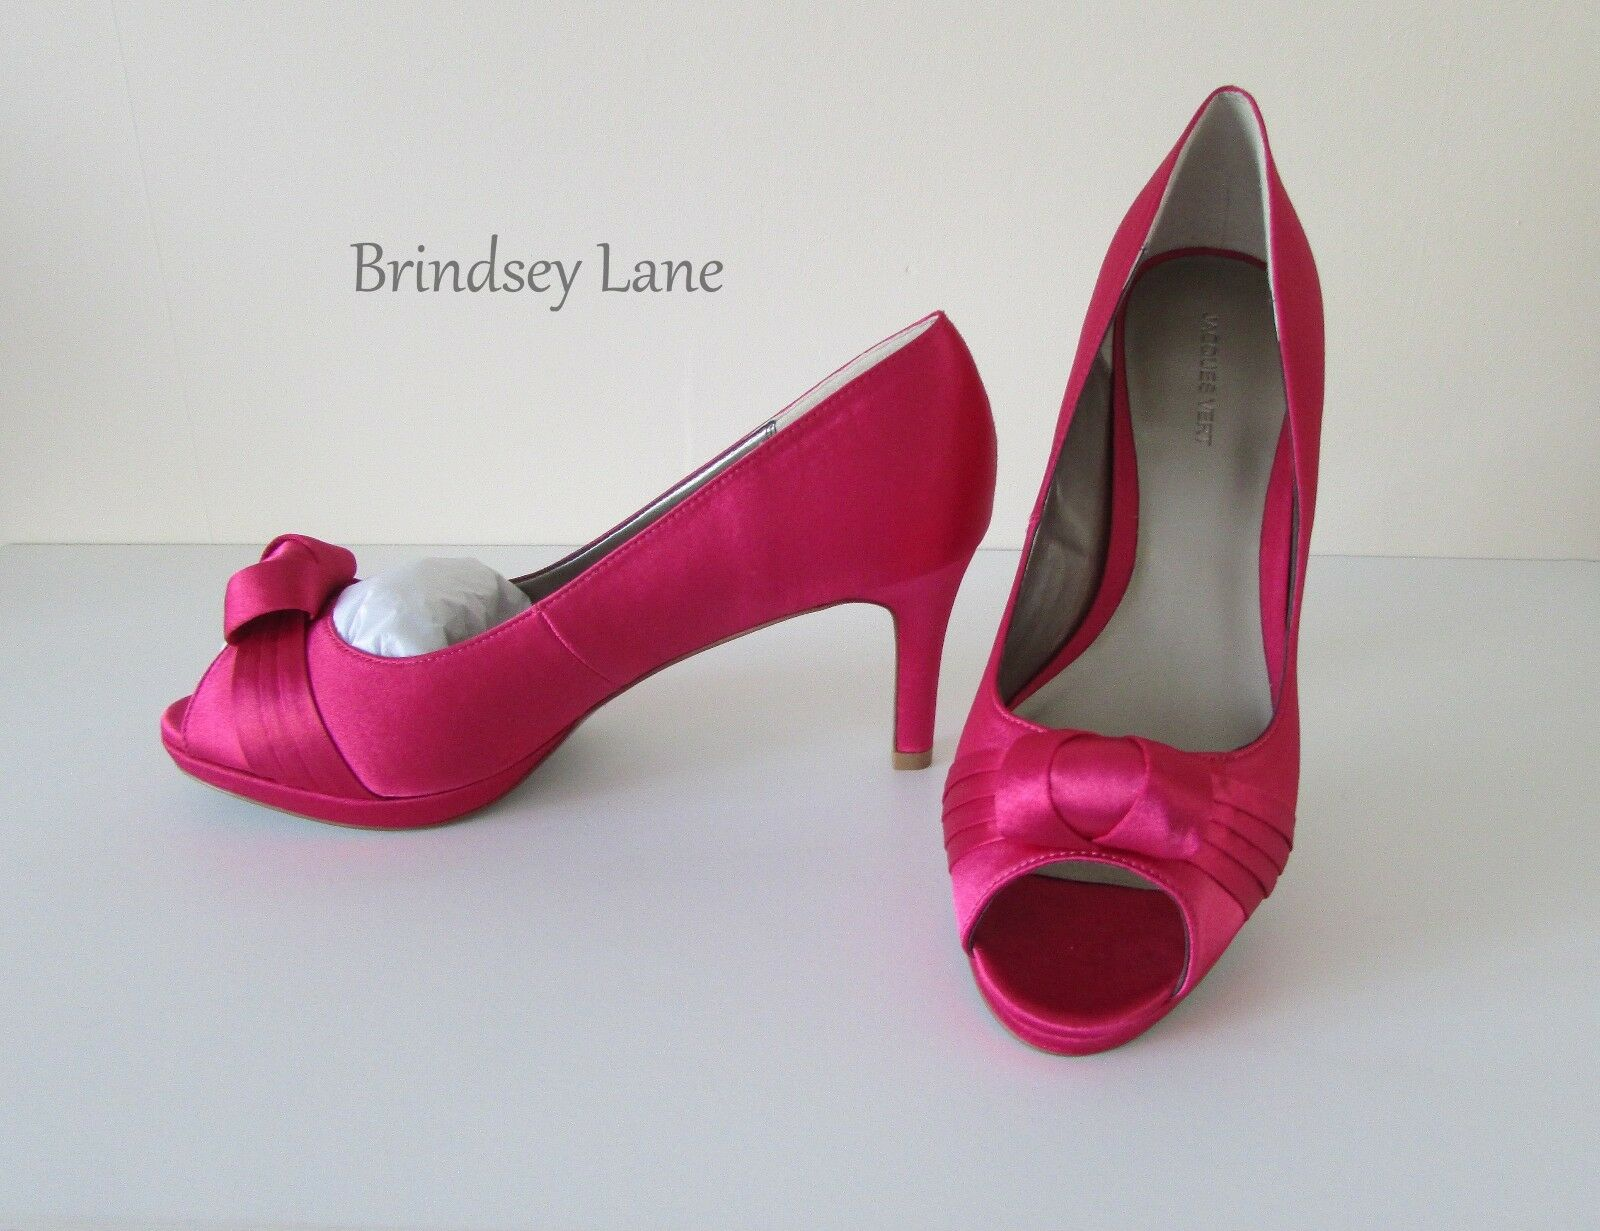 New Jacques green Curl Trim Bright Pink Court shoes  5 39  BNWB @      RR